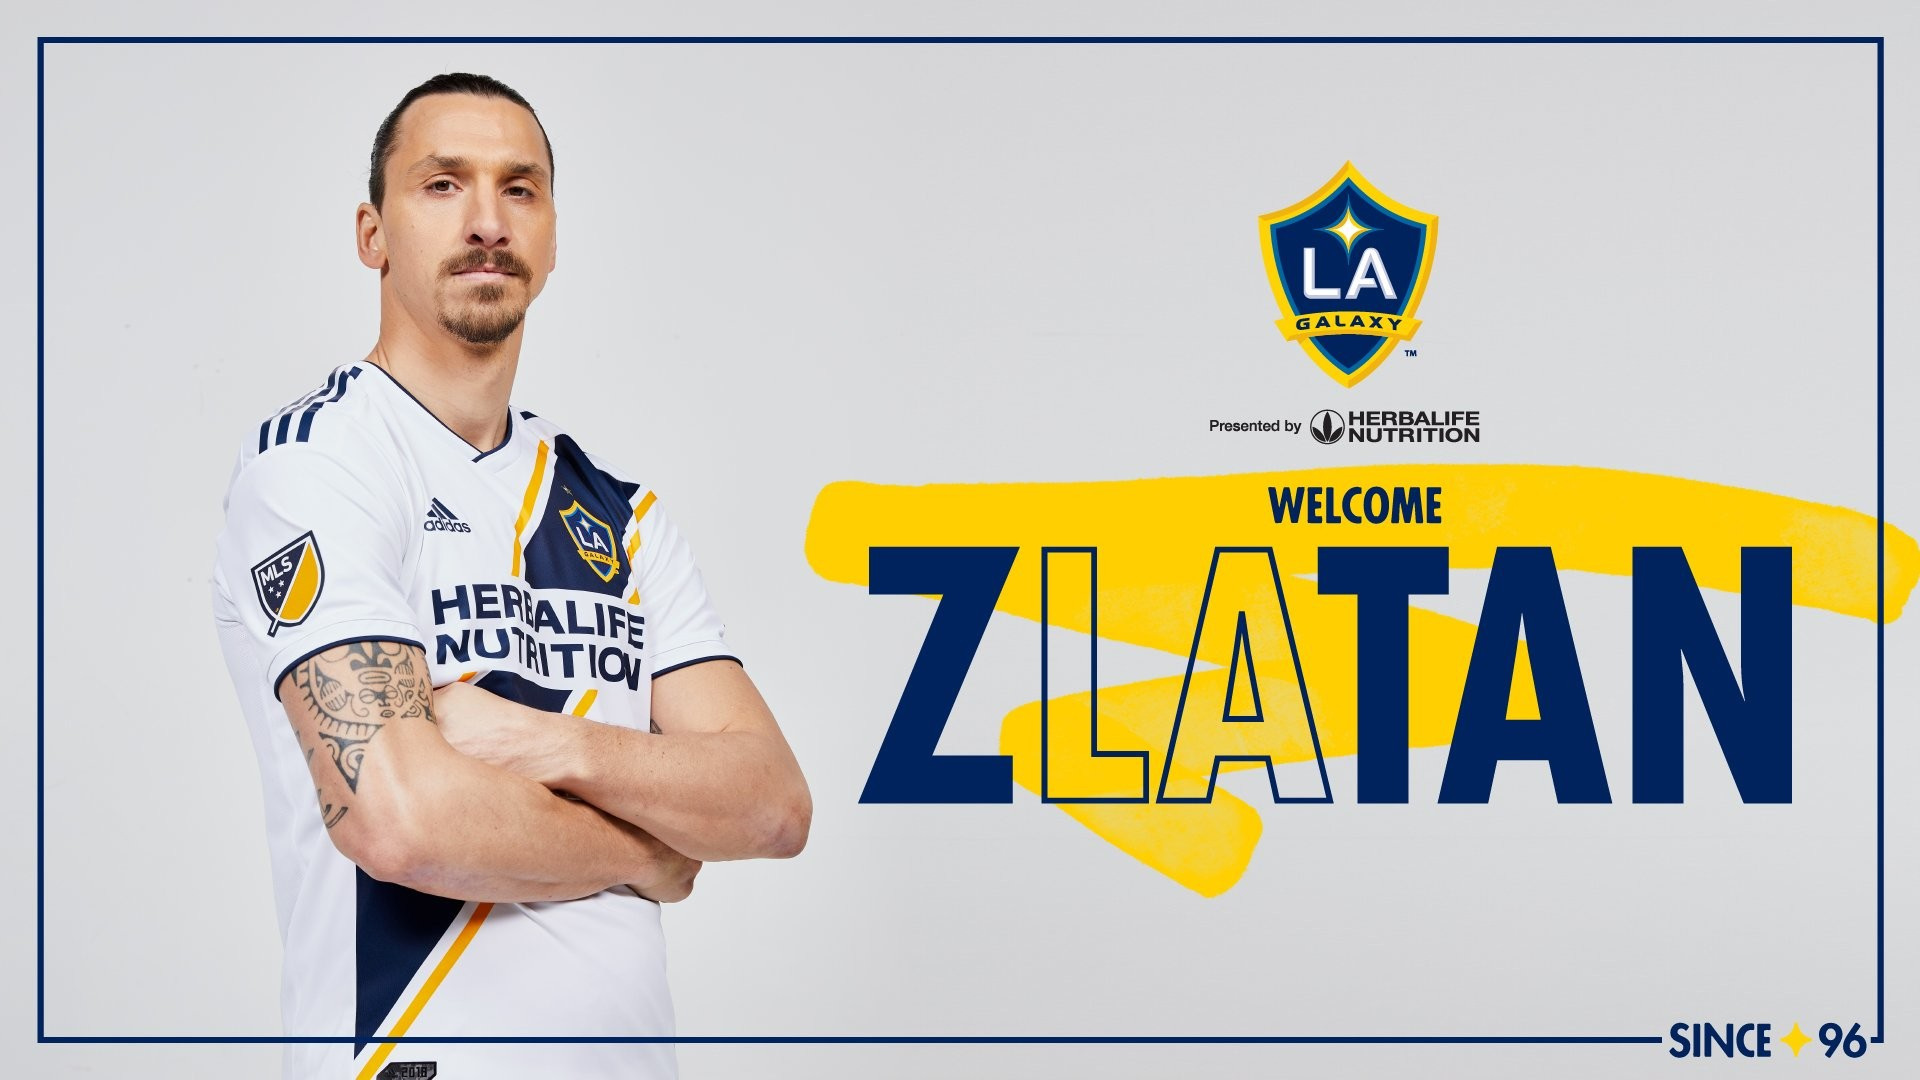 Res: 1920x1080, LA Galaxy Confirm Ibrahimovic Signing, Swedish Star Excited